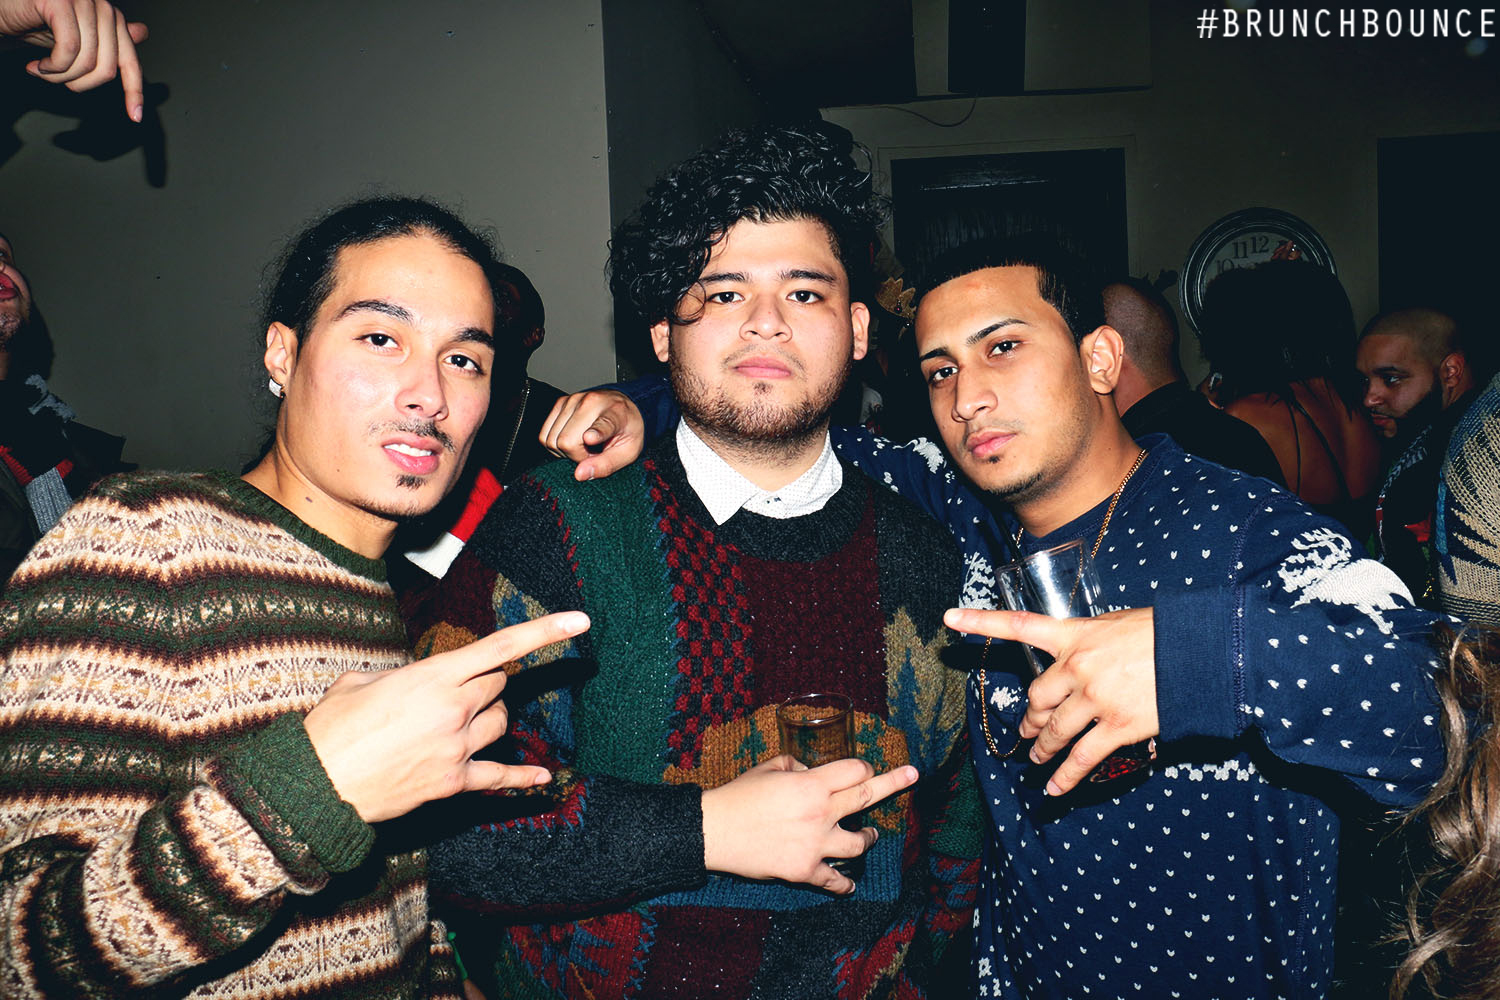 brunchbounce-ugly-christmas-sweater-party-122014_15896635499_o.jpg